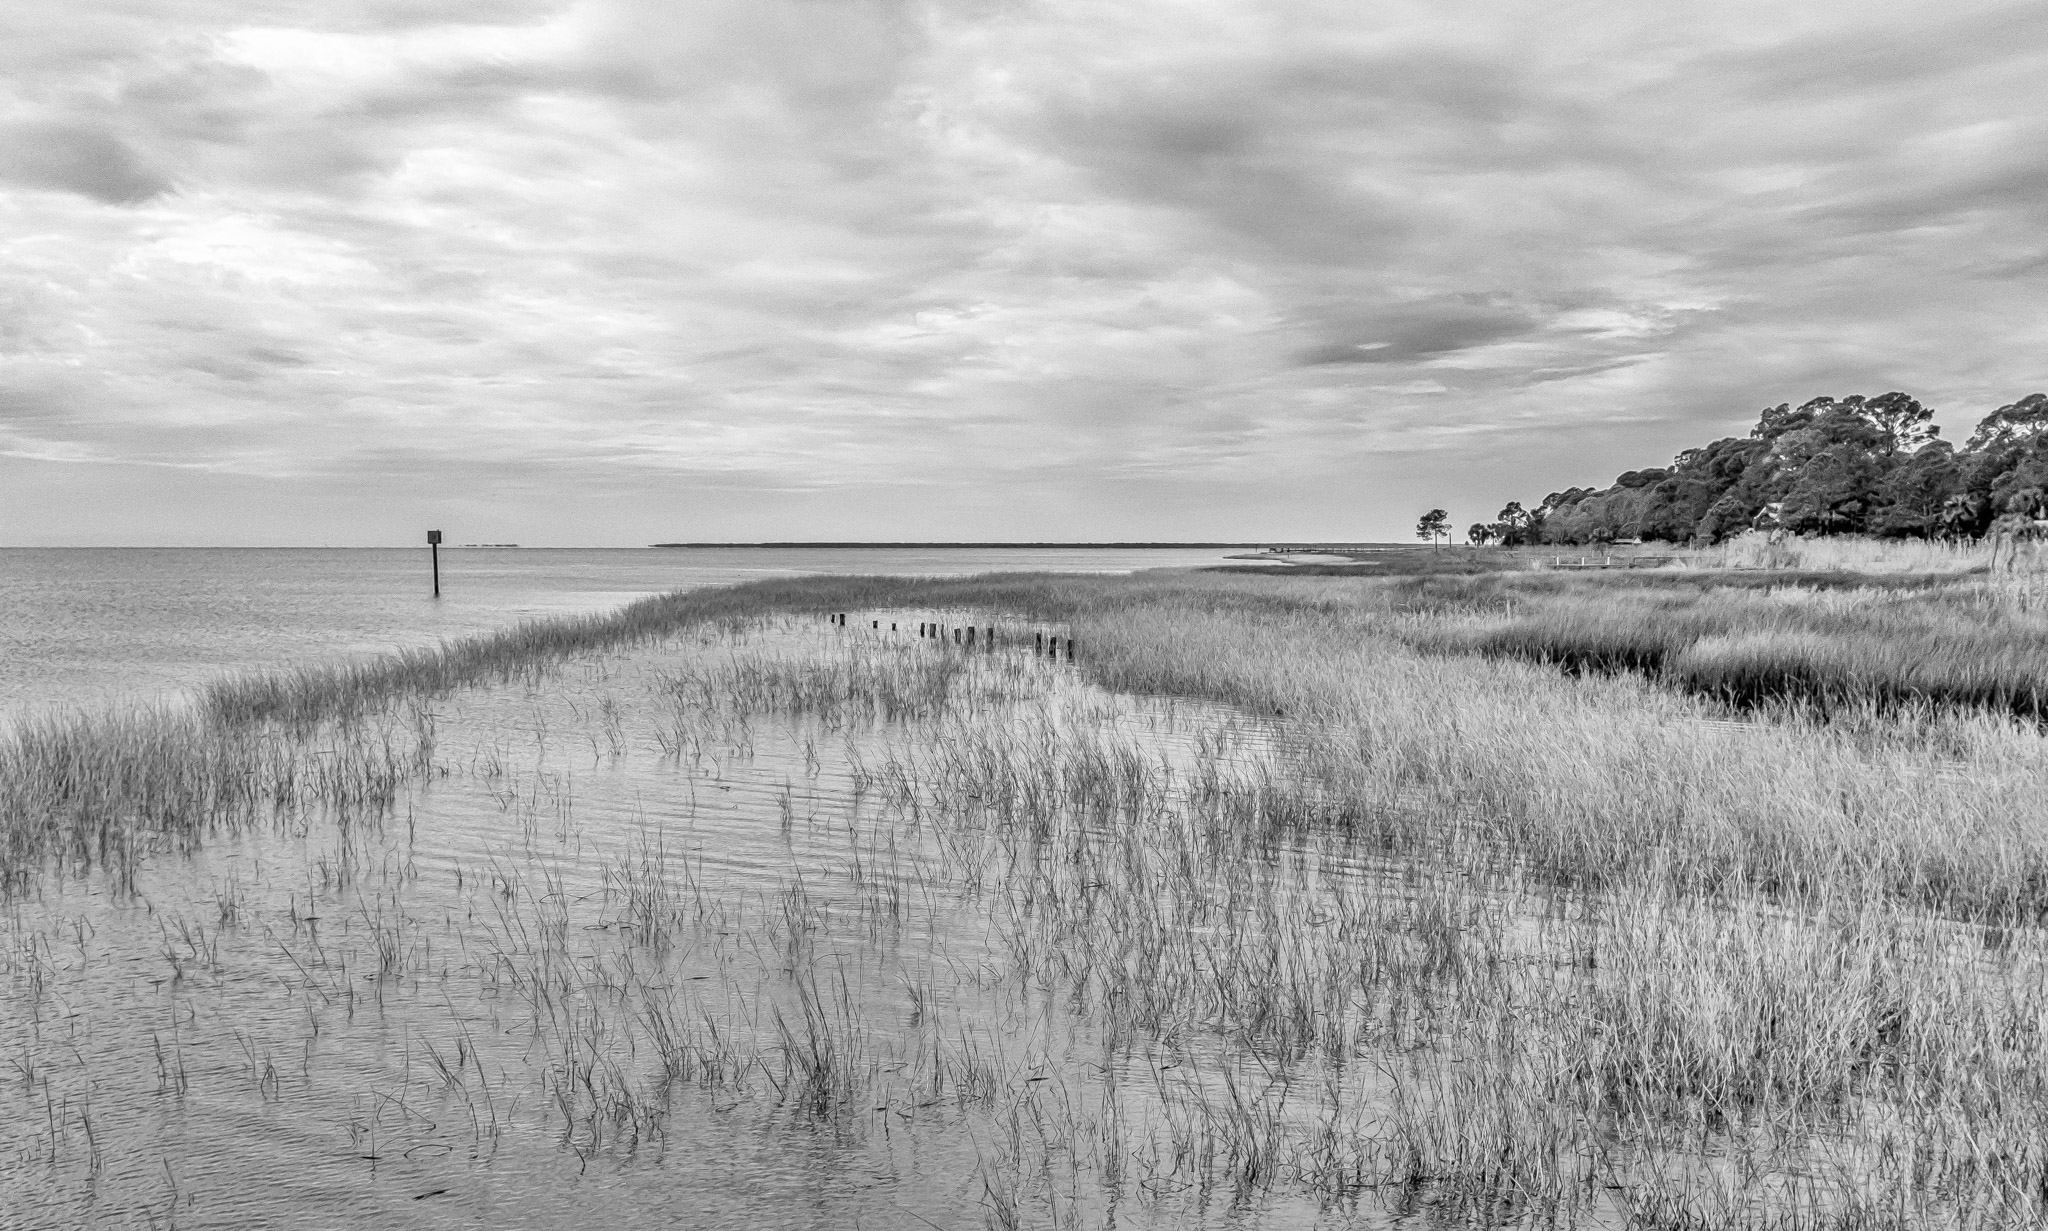 Reeds between land and open water in Apalachicola, FL